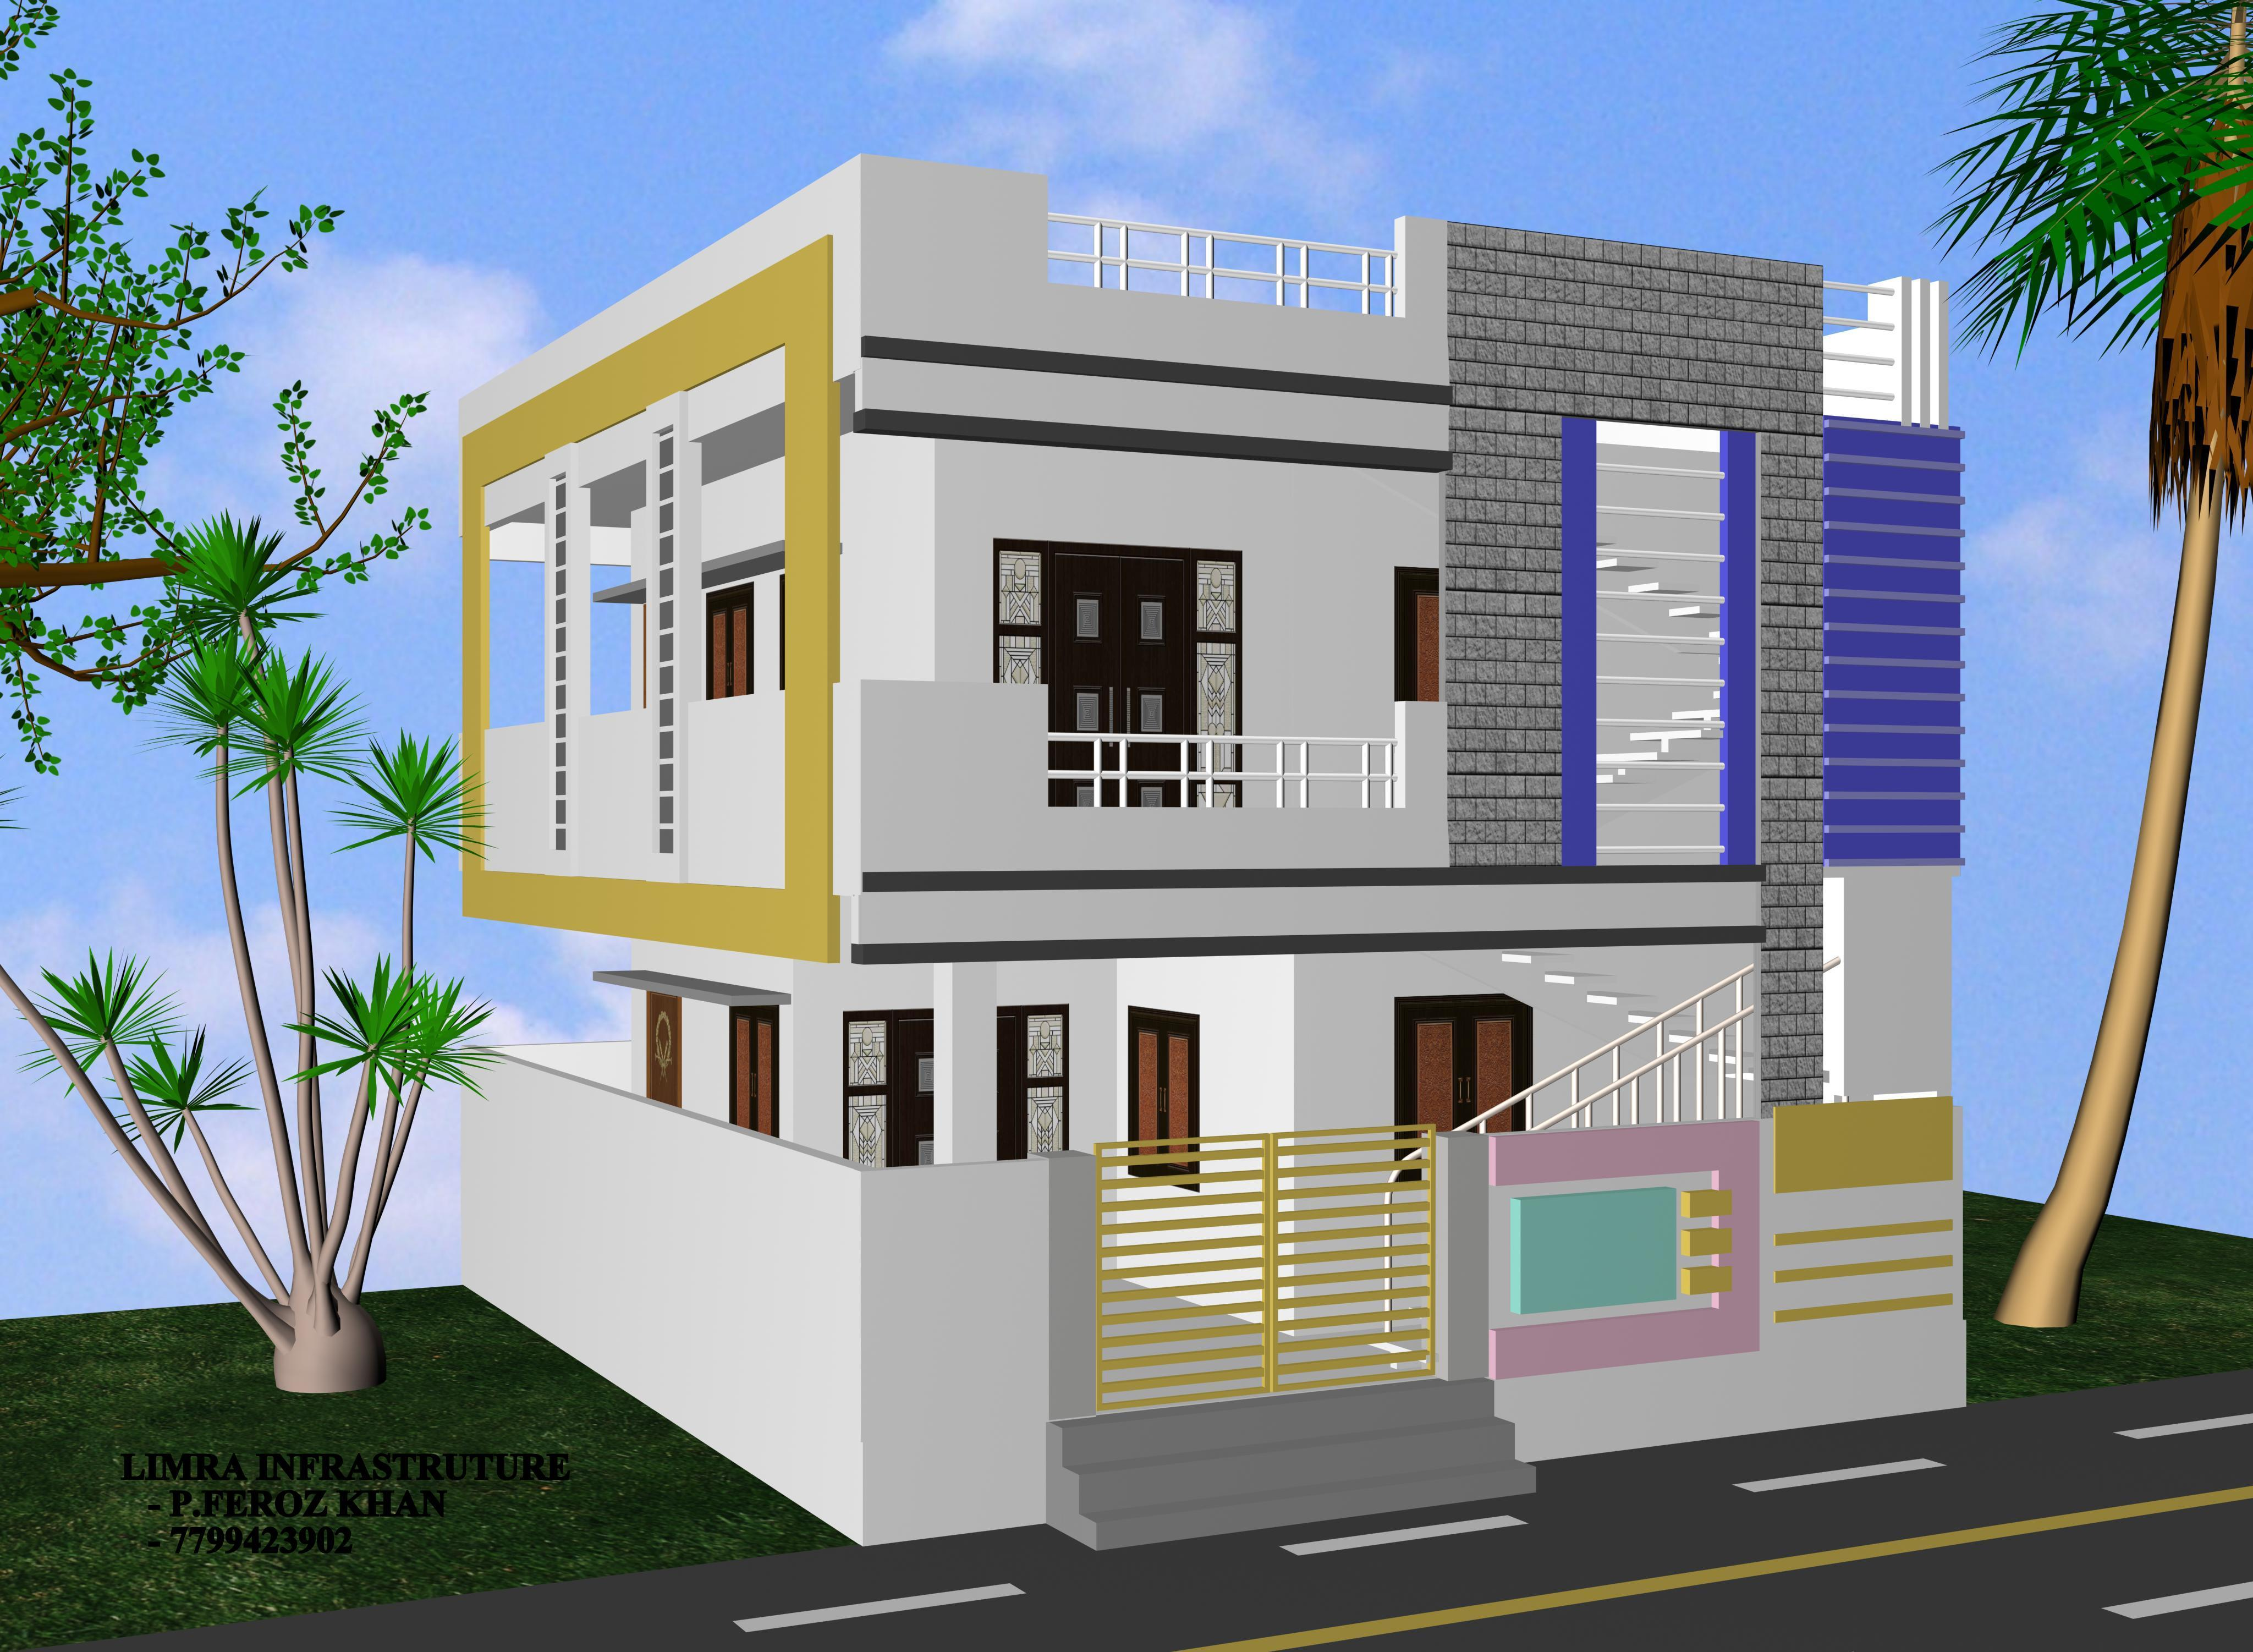 Single Floor Elevation Building : Single floor front elevation of residential building joy